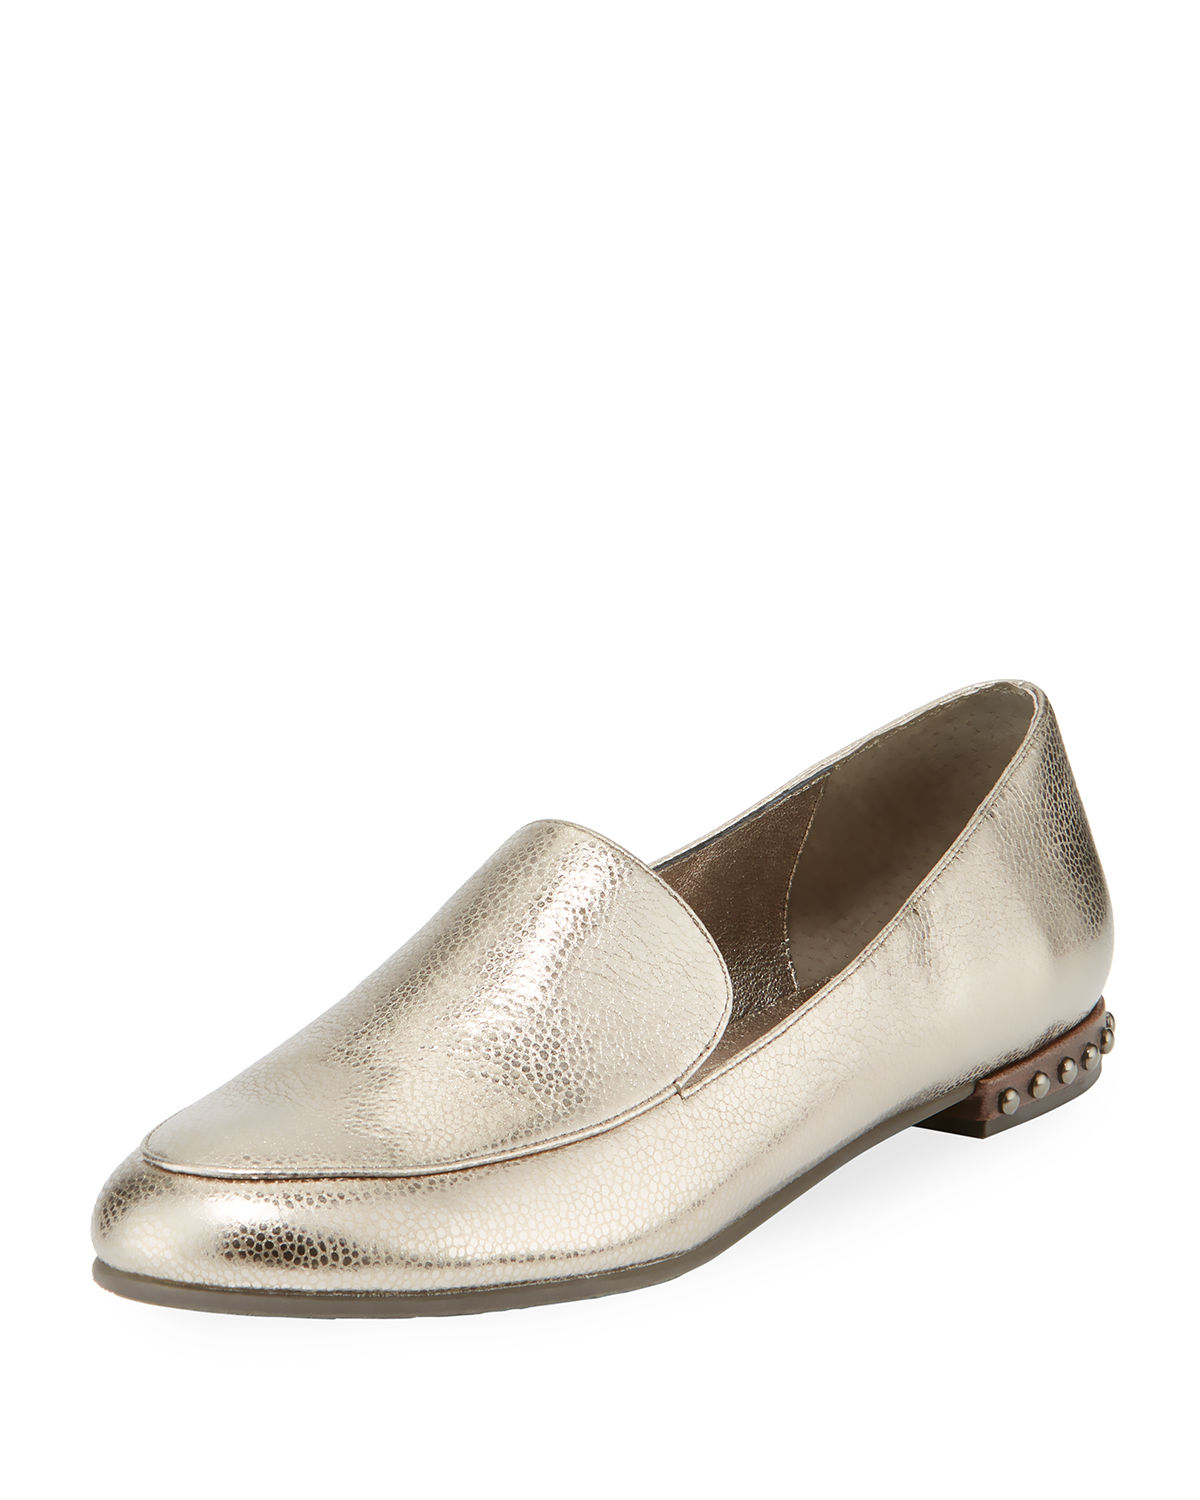 Adrianna Papell BRITT LEATHER MOCCASINS